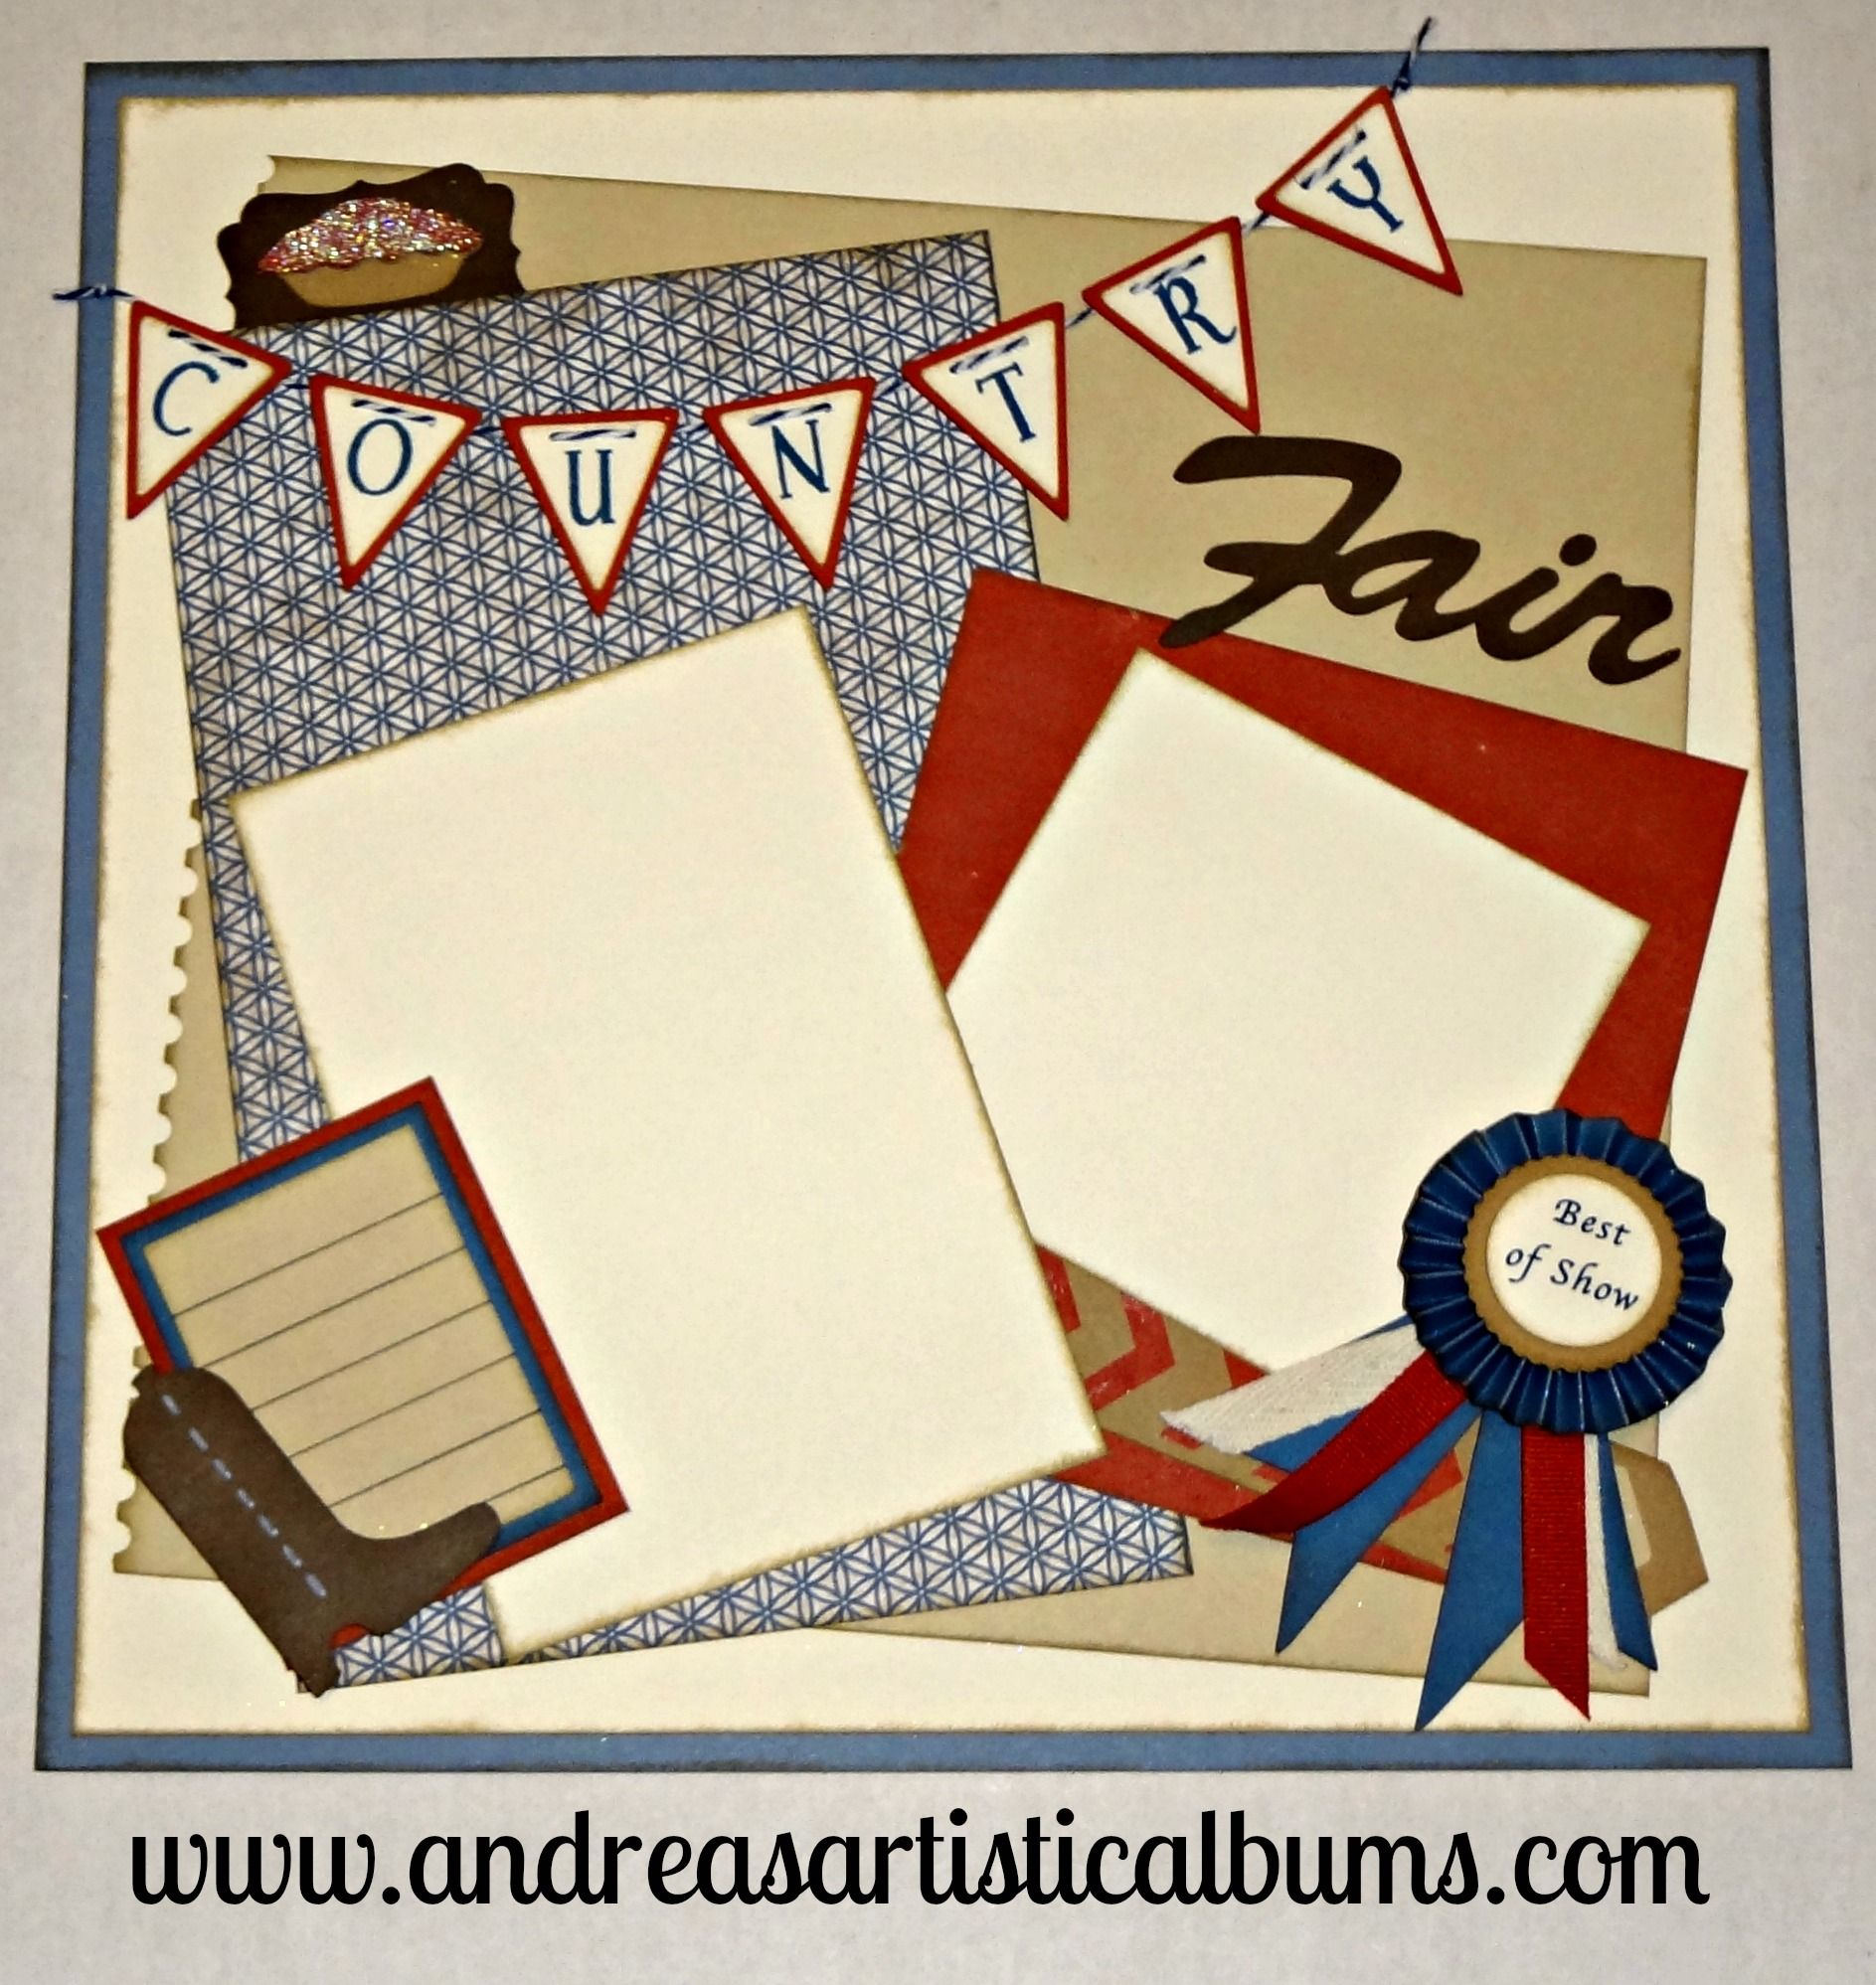 Scrapbook ideas with ribbon - Country Fair Pre Made Scrapbook Page Blue Ribbon Best Of Show